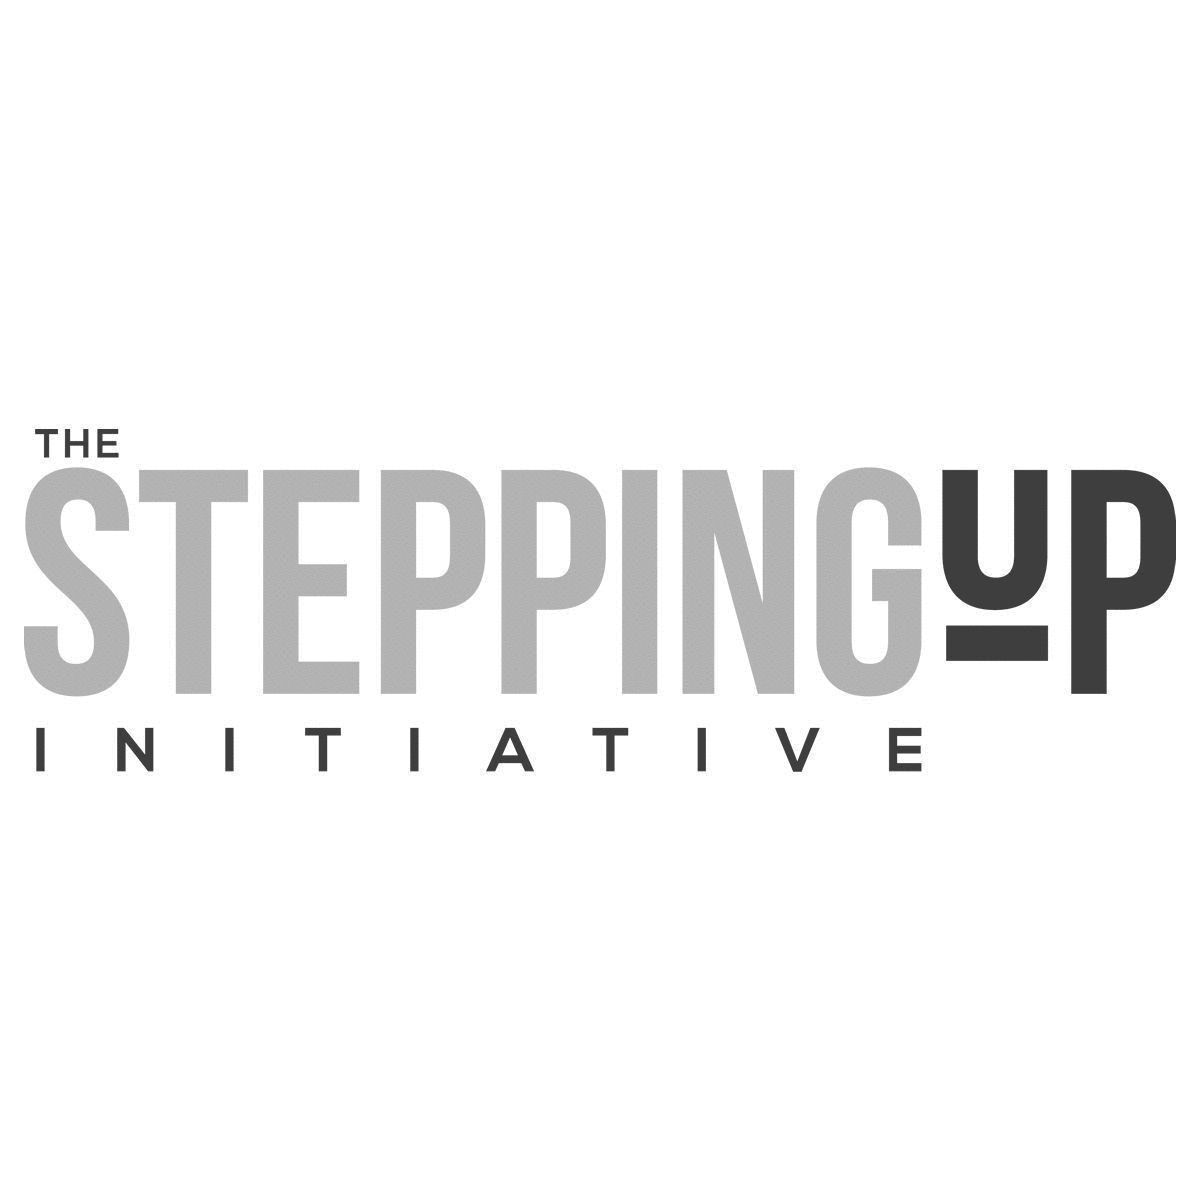 The Stepping Up Initiative